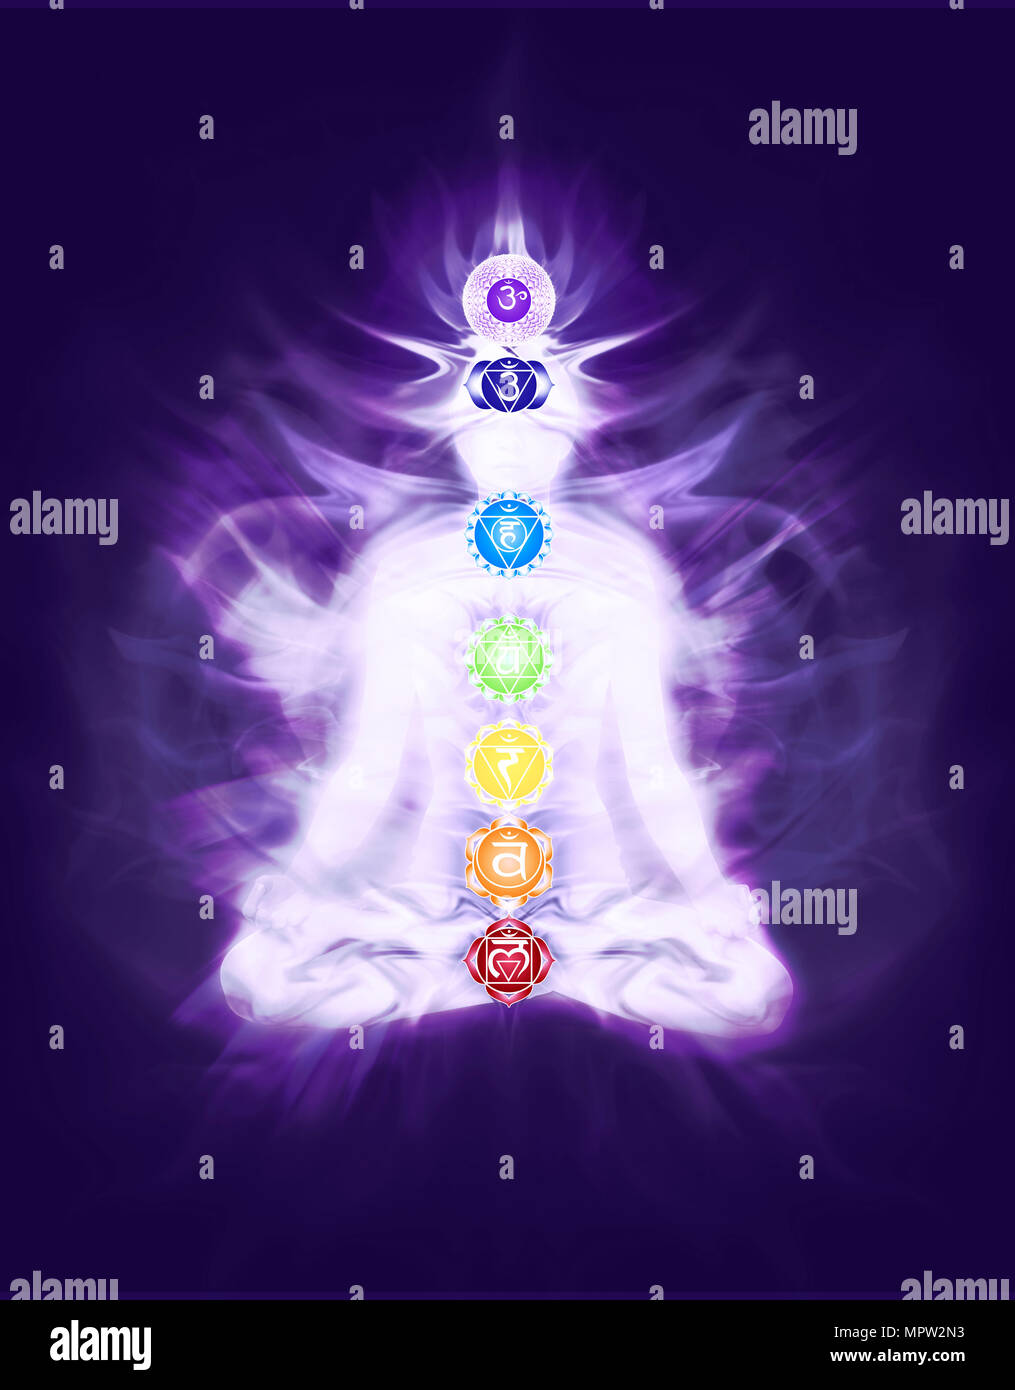 Person sitting in Yoga meditation lotus pose with colored chakras and emanating energy flow overlayed on the body, artistic design, conceptual illustr - Stock Image